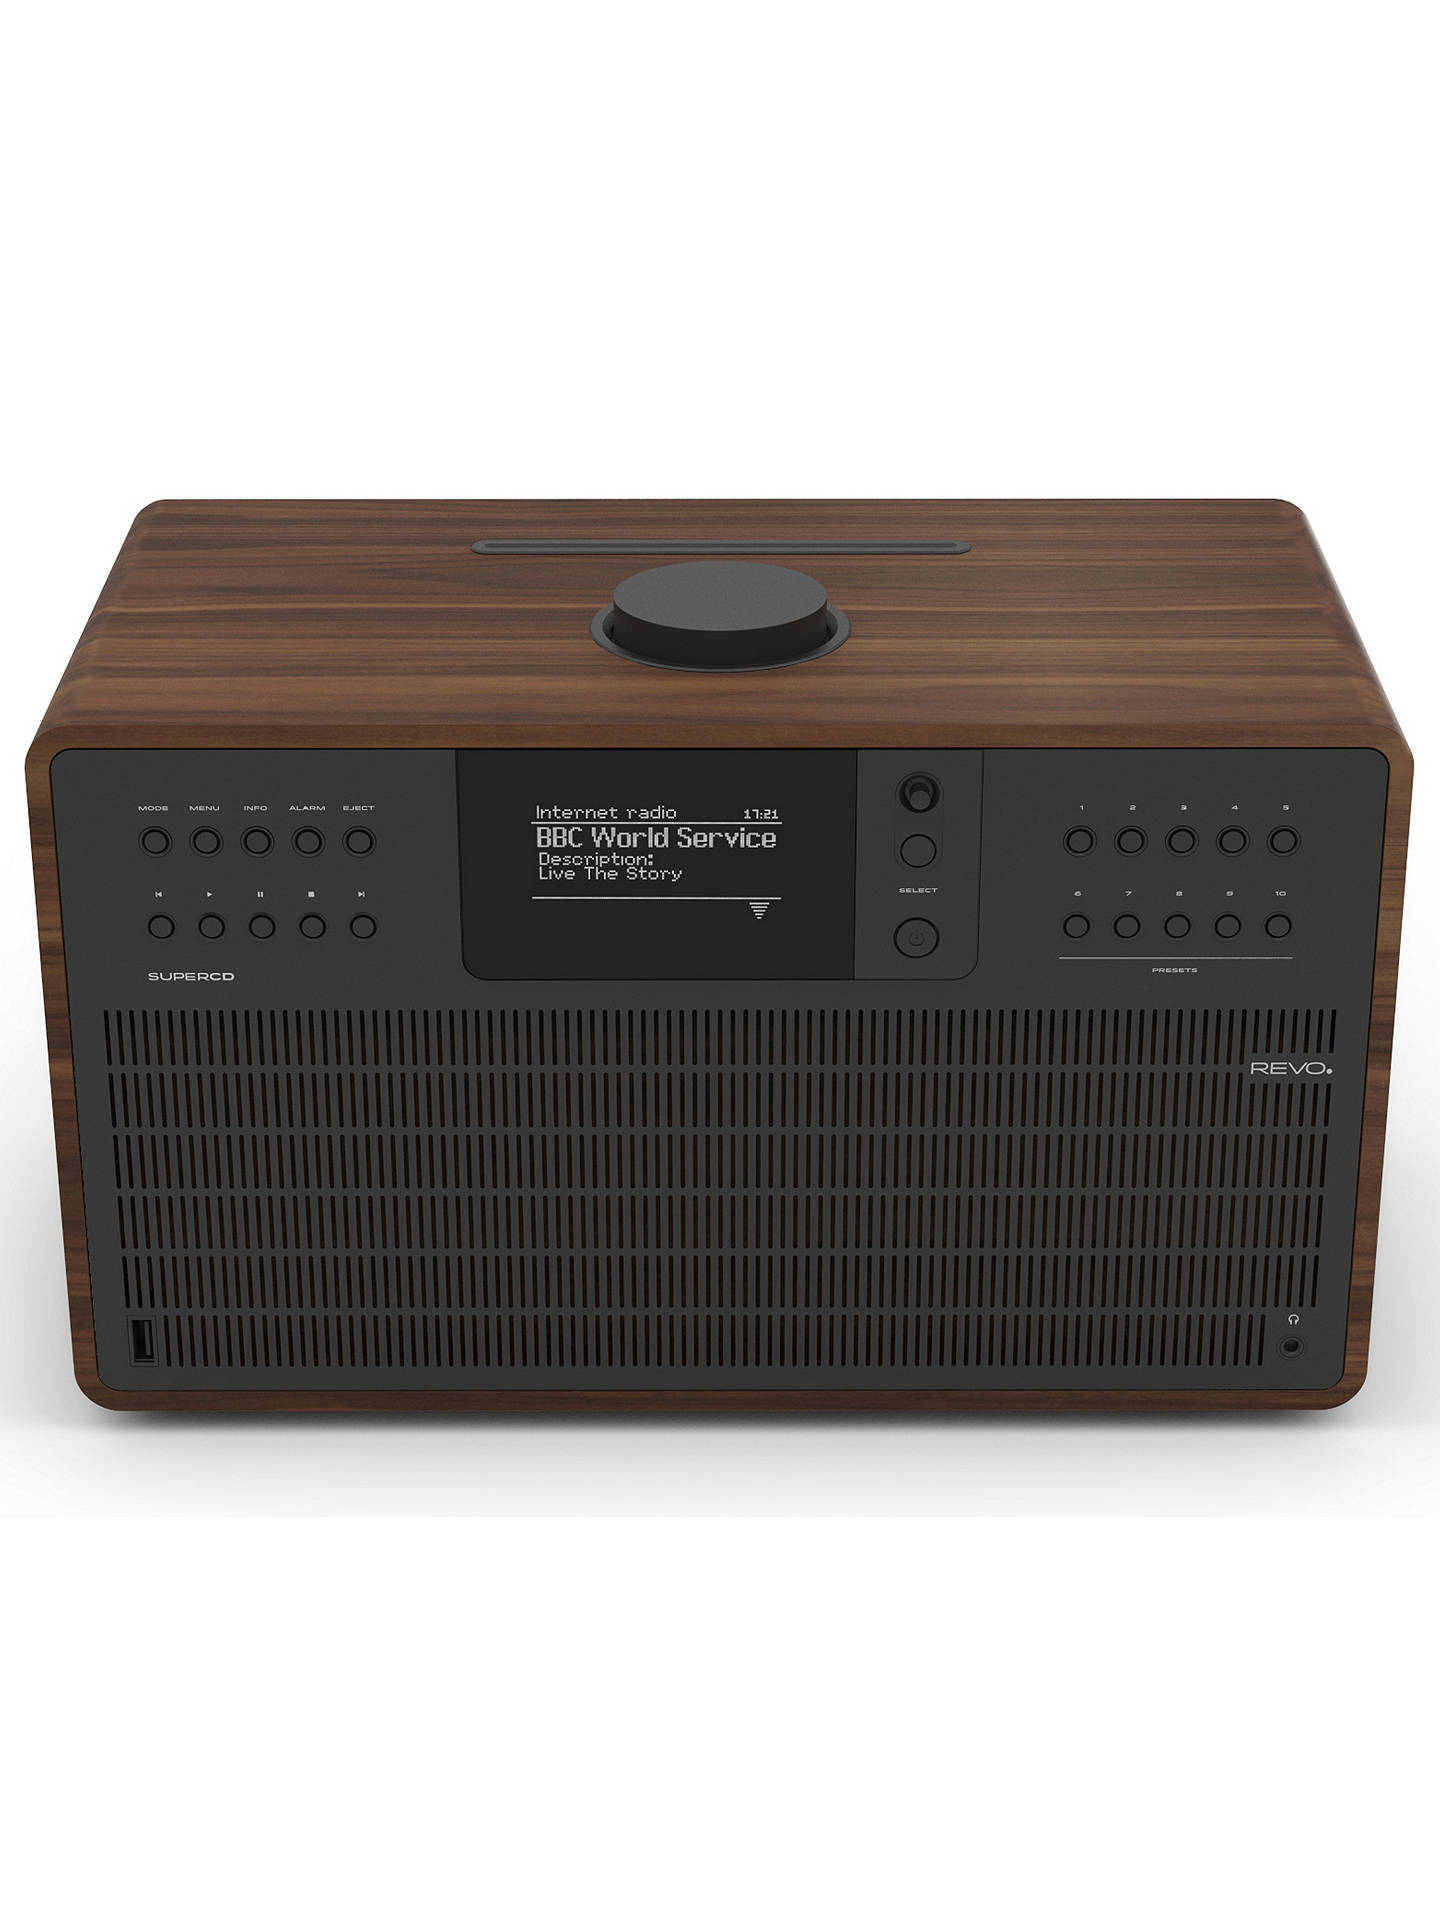 Buy Revo SuperCD DAB+/FM & Internet Radio All-In-One Music System with Wi-Fi, Bluetooth & Spotify Connect, Walnut/Black Online at johnlewis.com